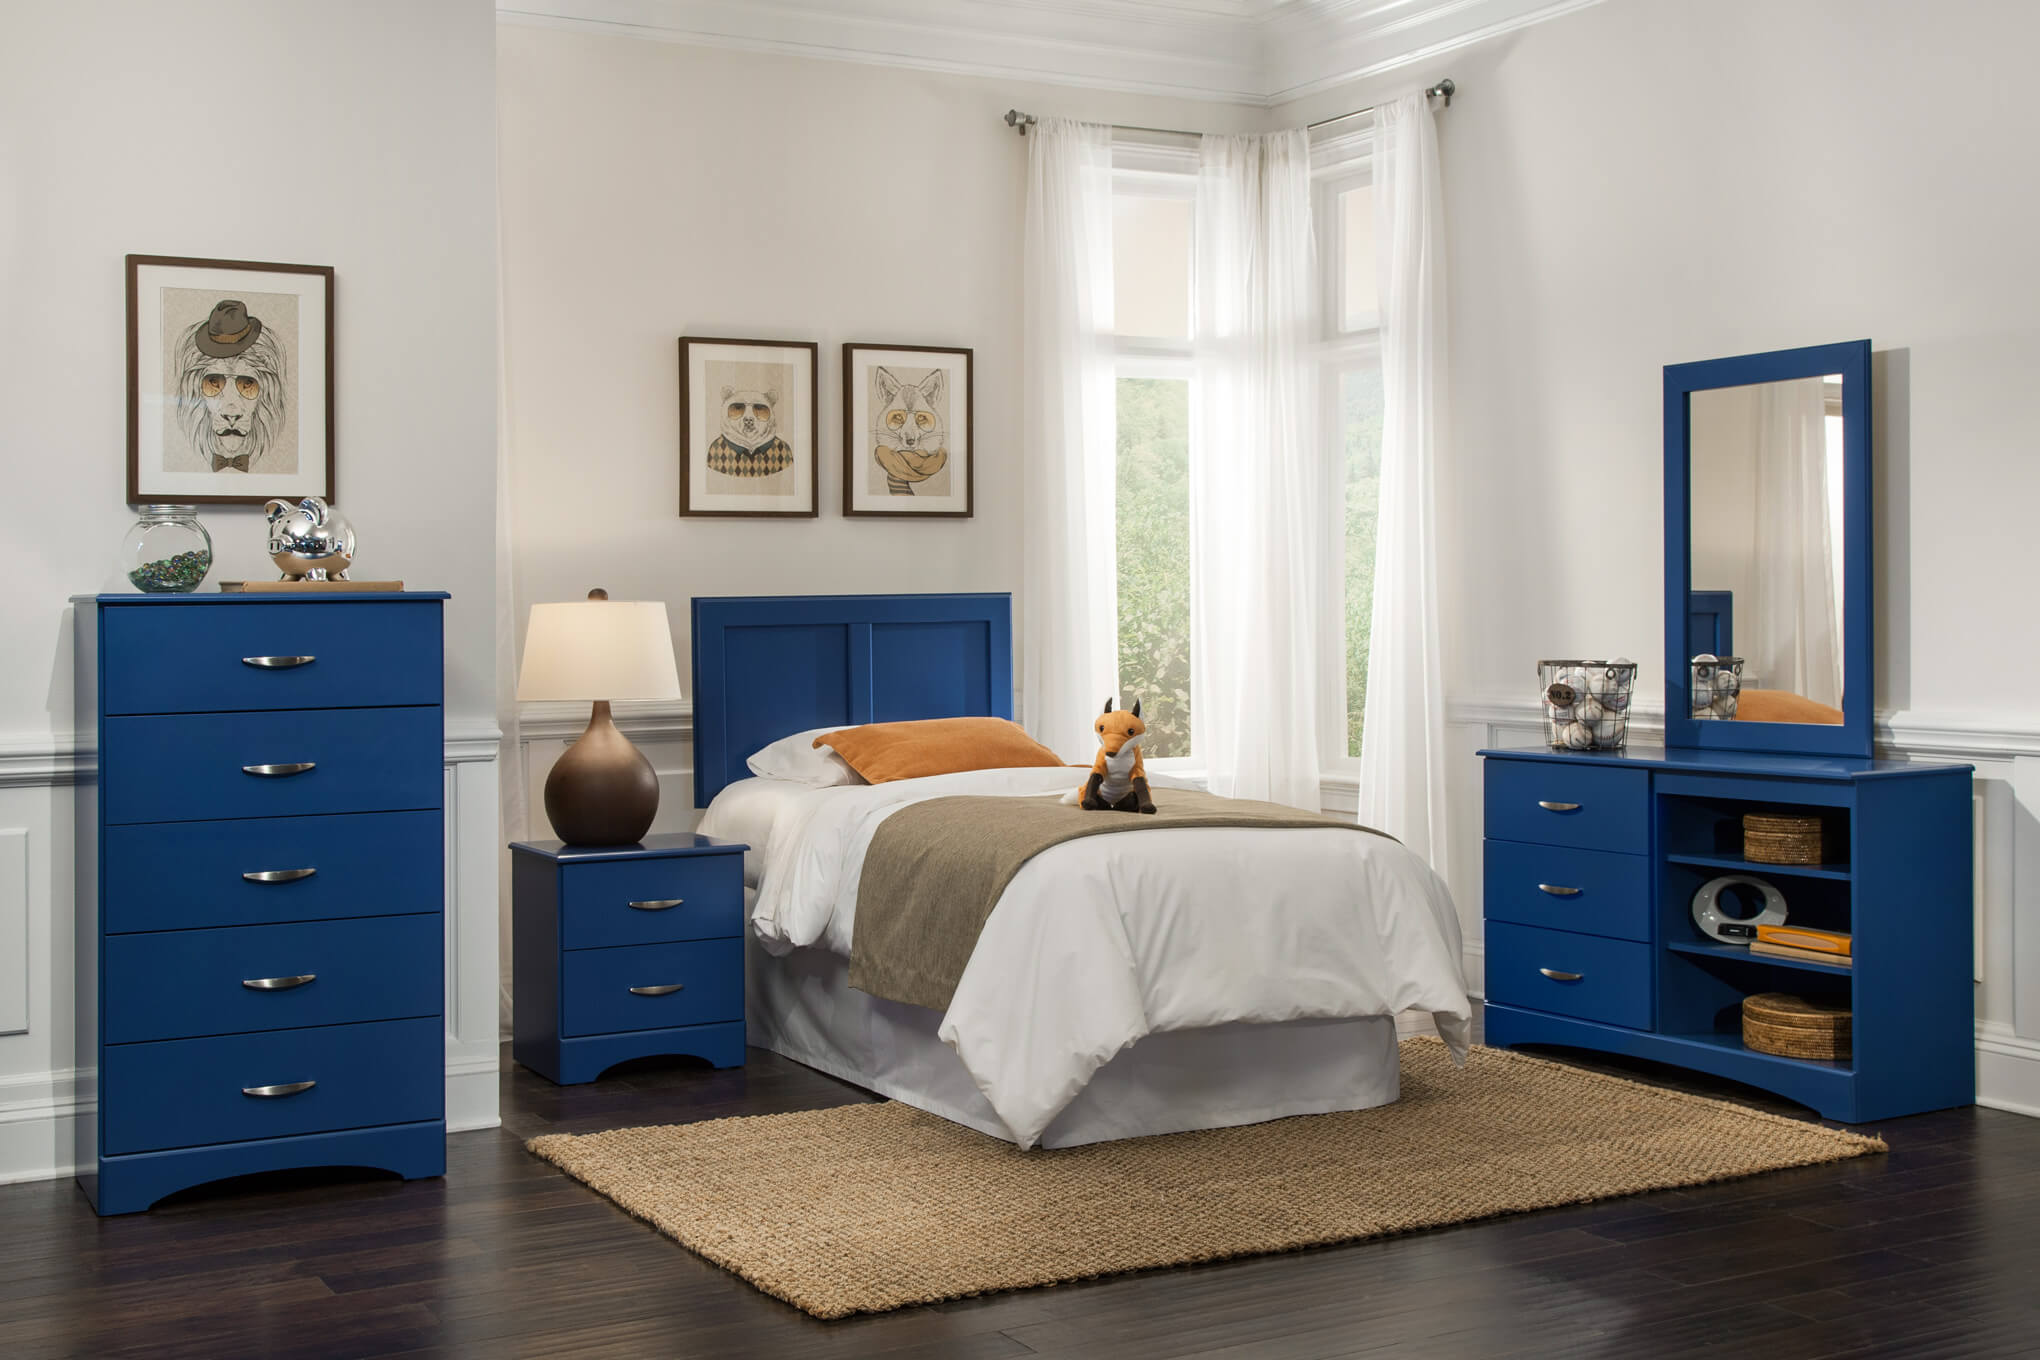 Kith Royal Blue Bedroom Set